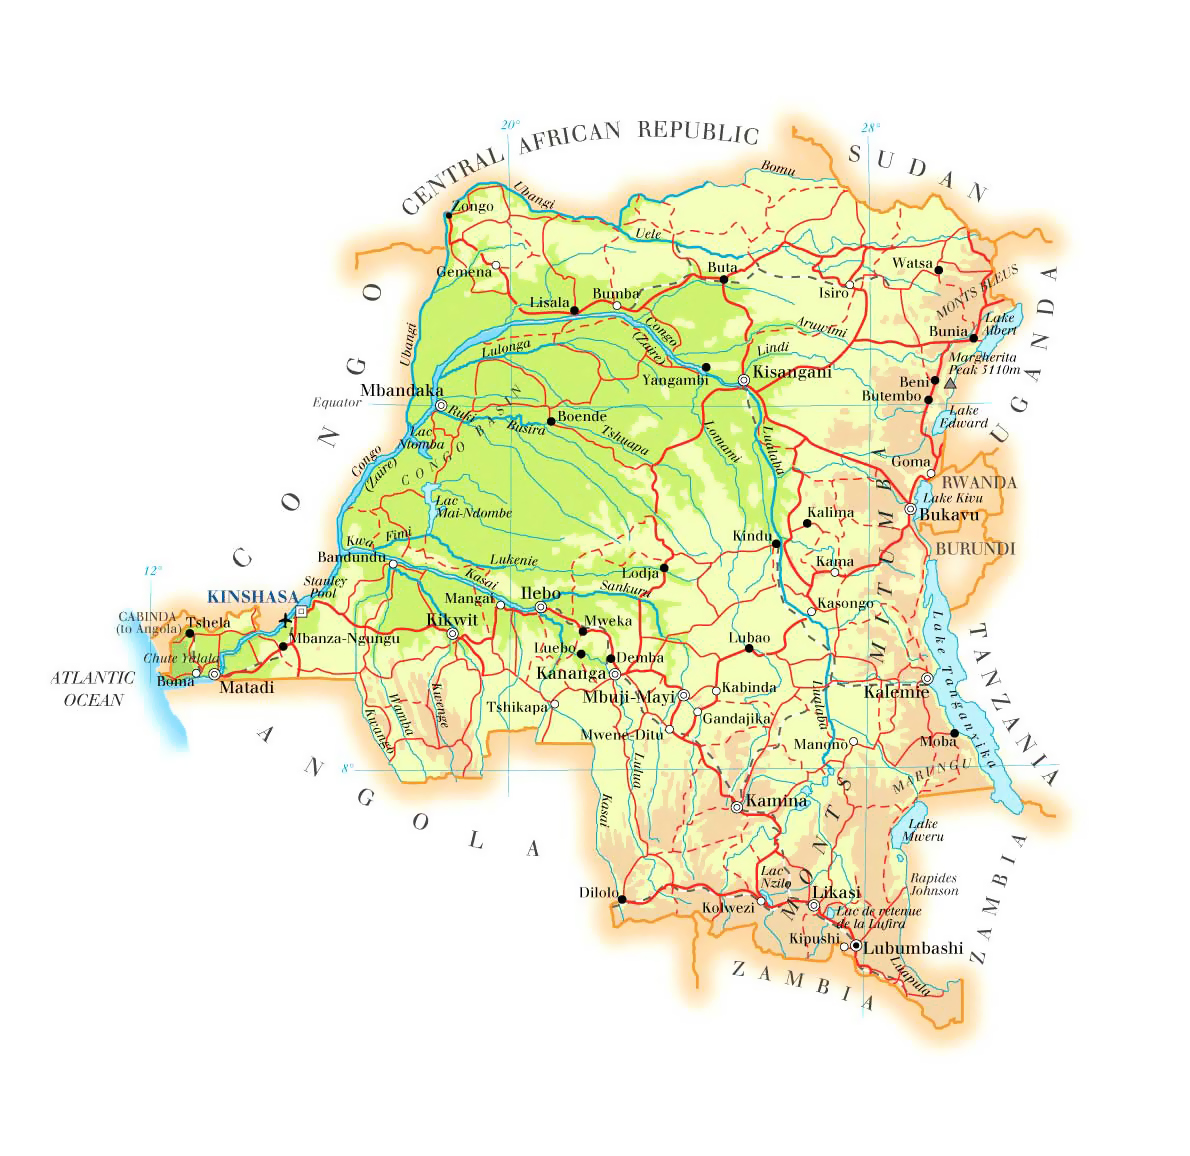 Detailed road and physical map of Congo Democratic Republic Congo